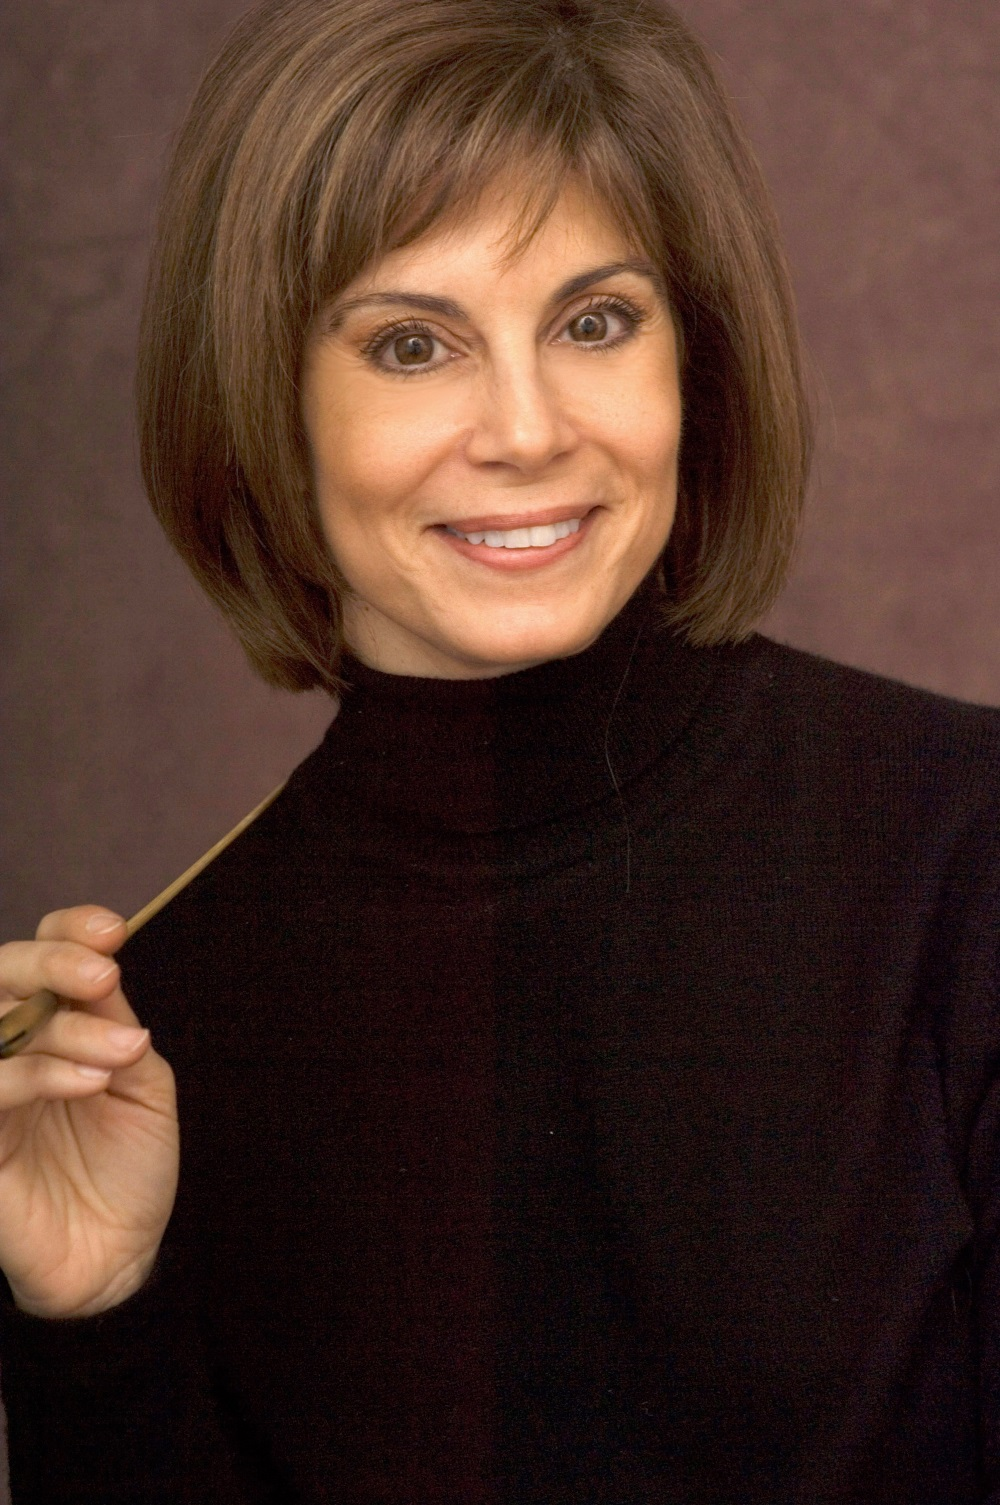 Photograph of conductor JoAnn Falletta, courtesy of GIS Artists.